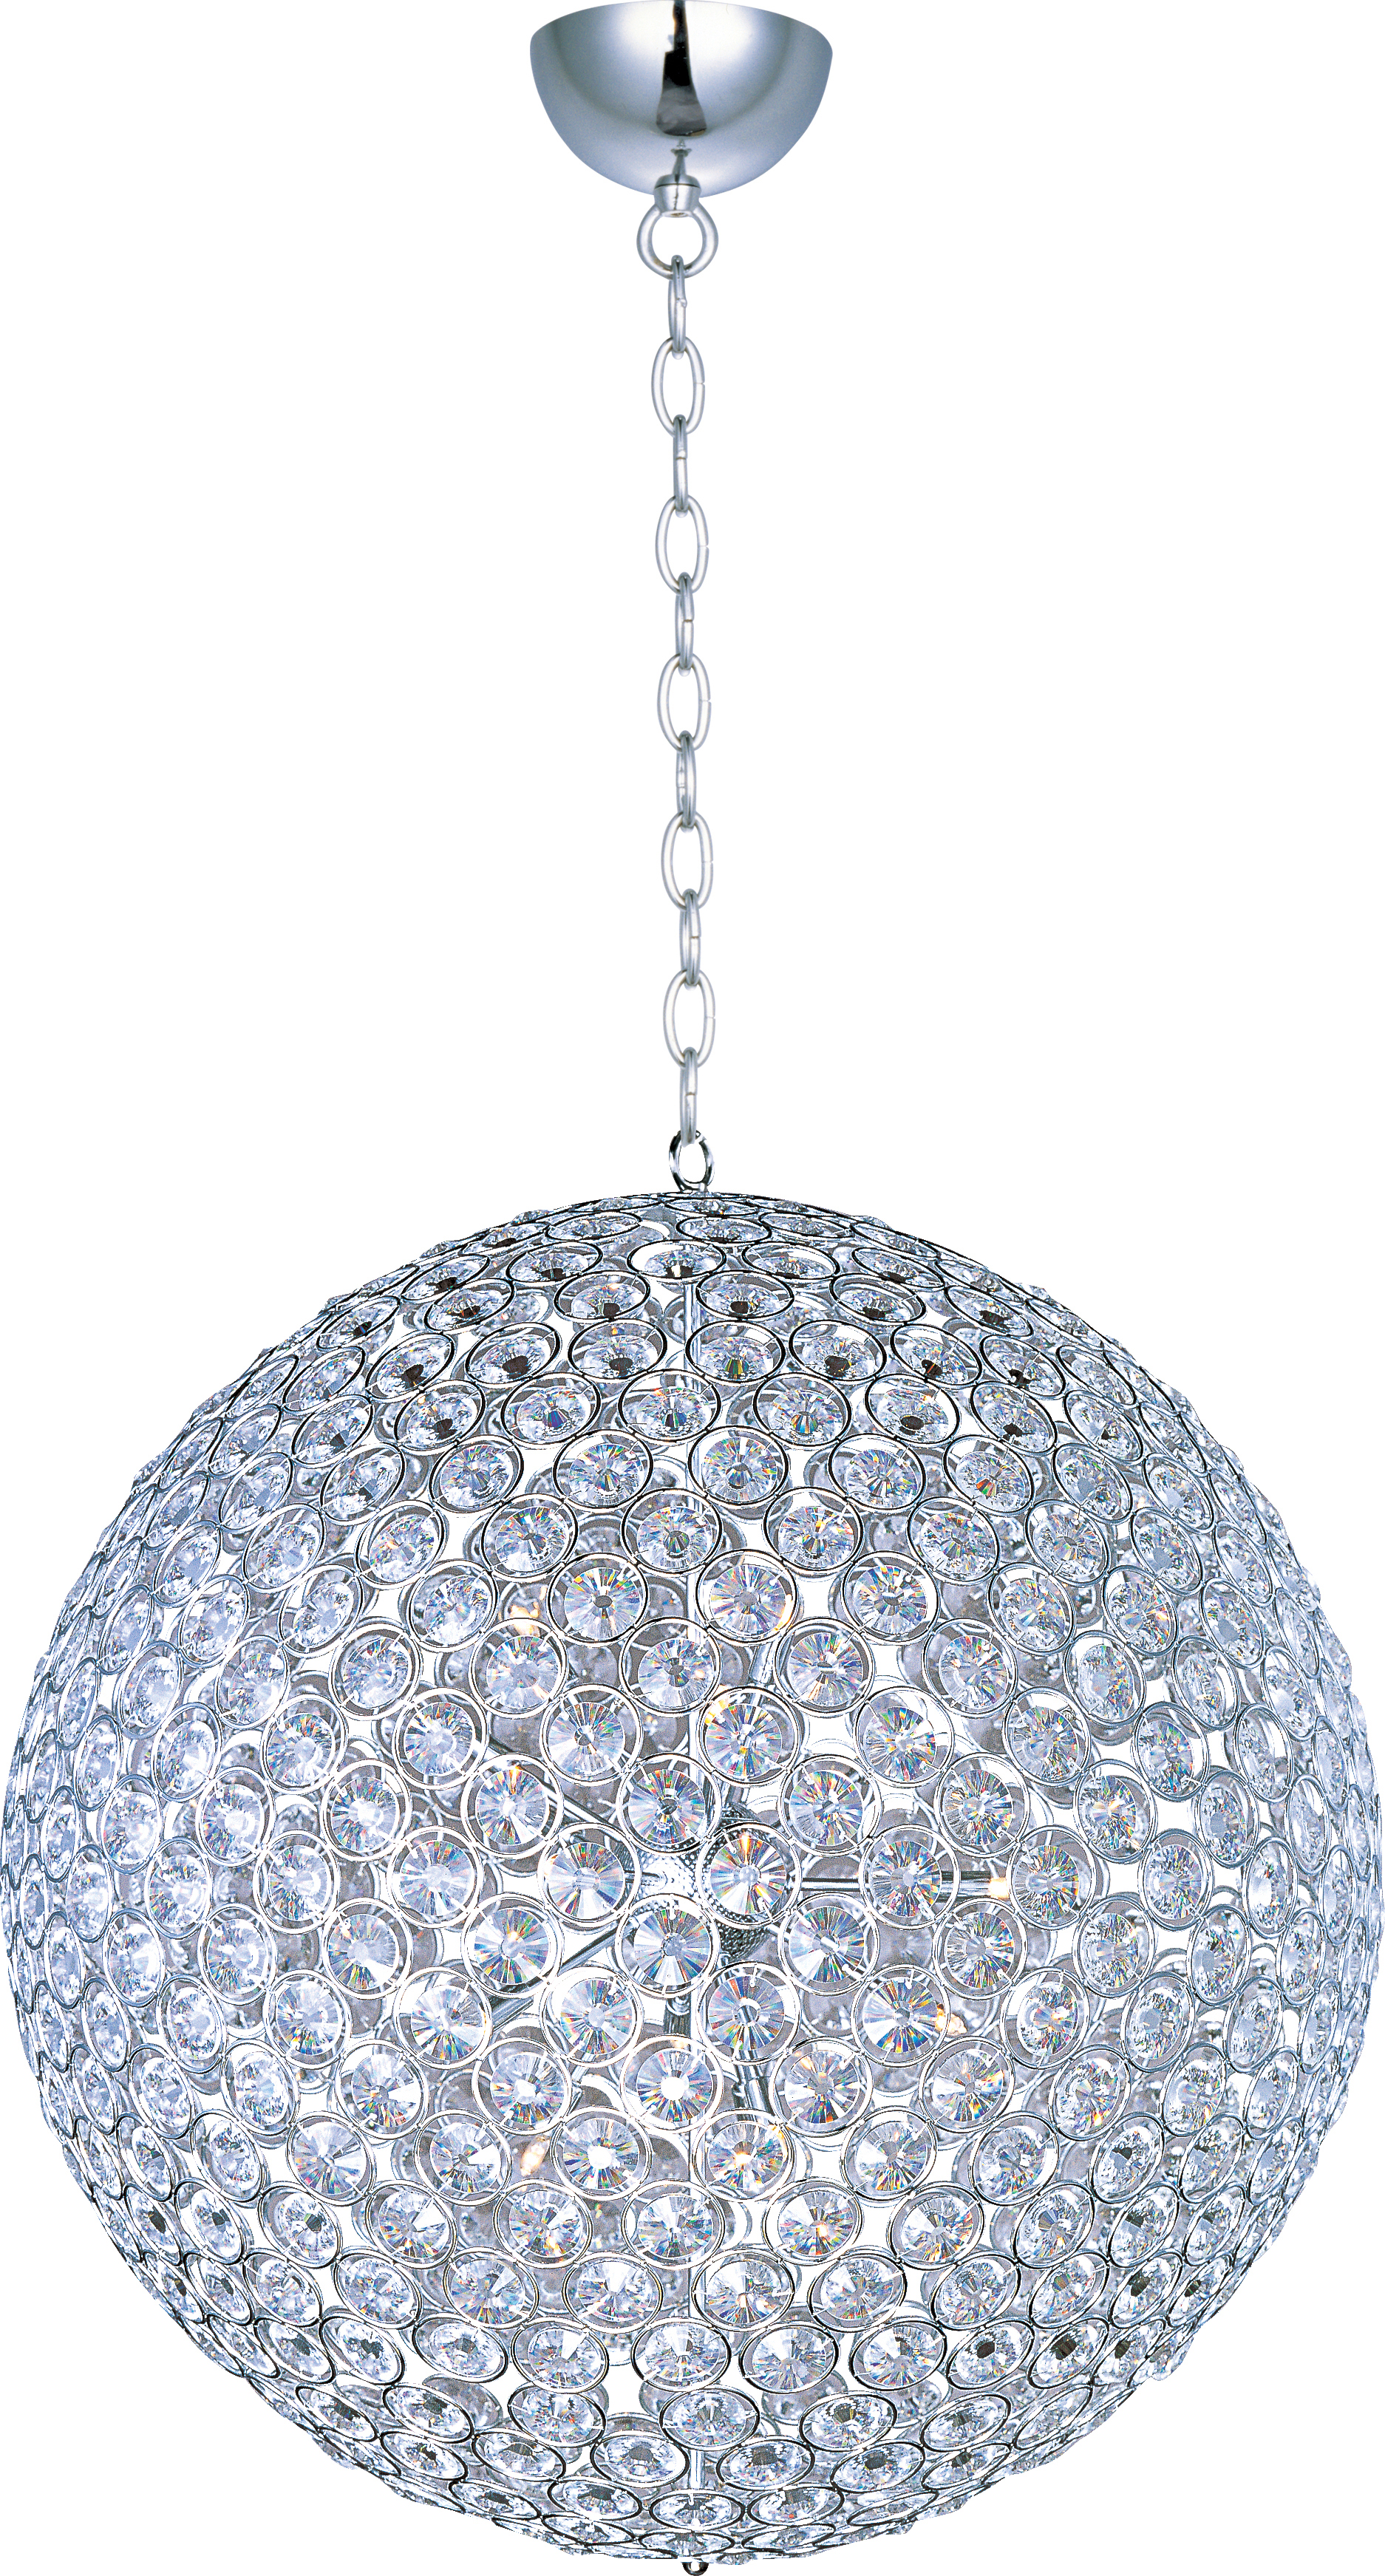 15 Light Pendant from the Brilliant collection by ET2 E24018 20PC